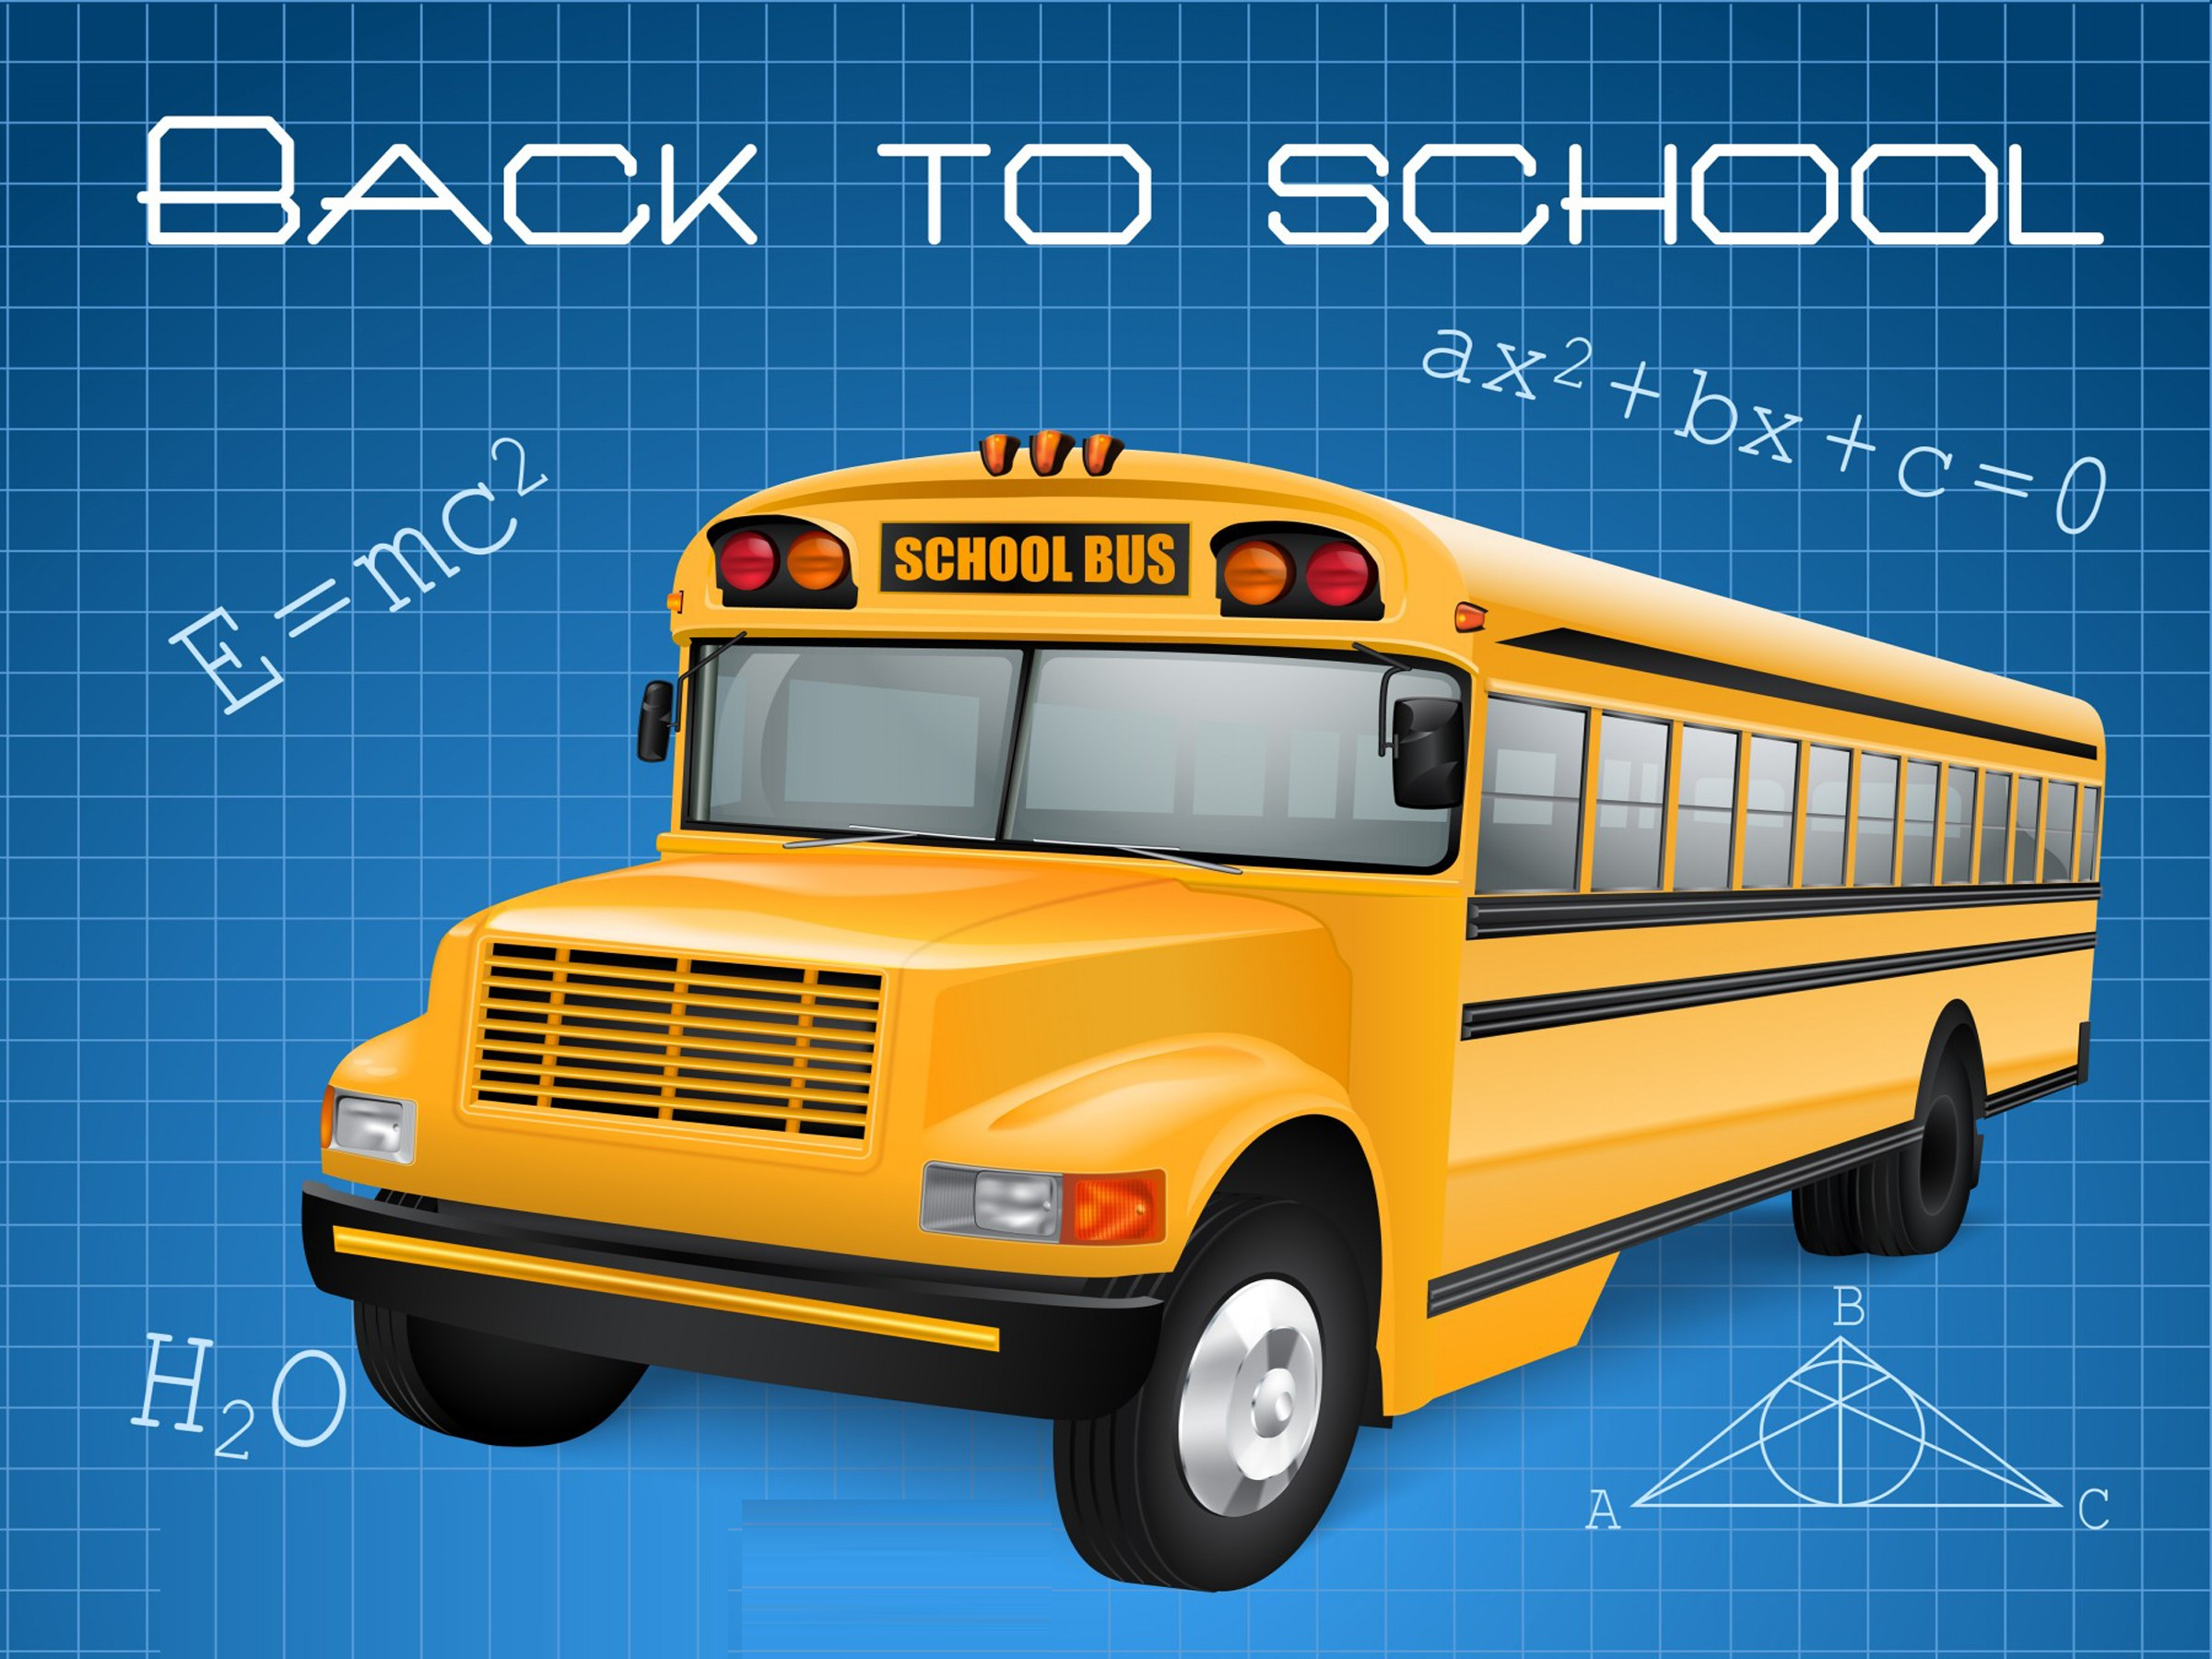 and say back to school bus in photos and wallpapers and eCards FREE 2400x1800